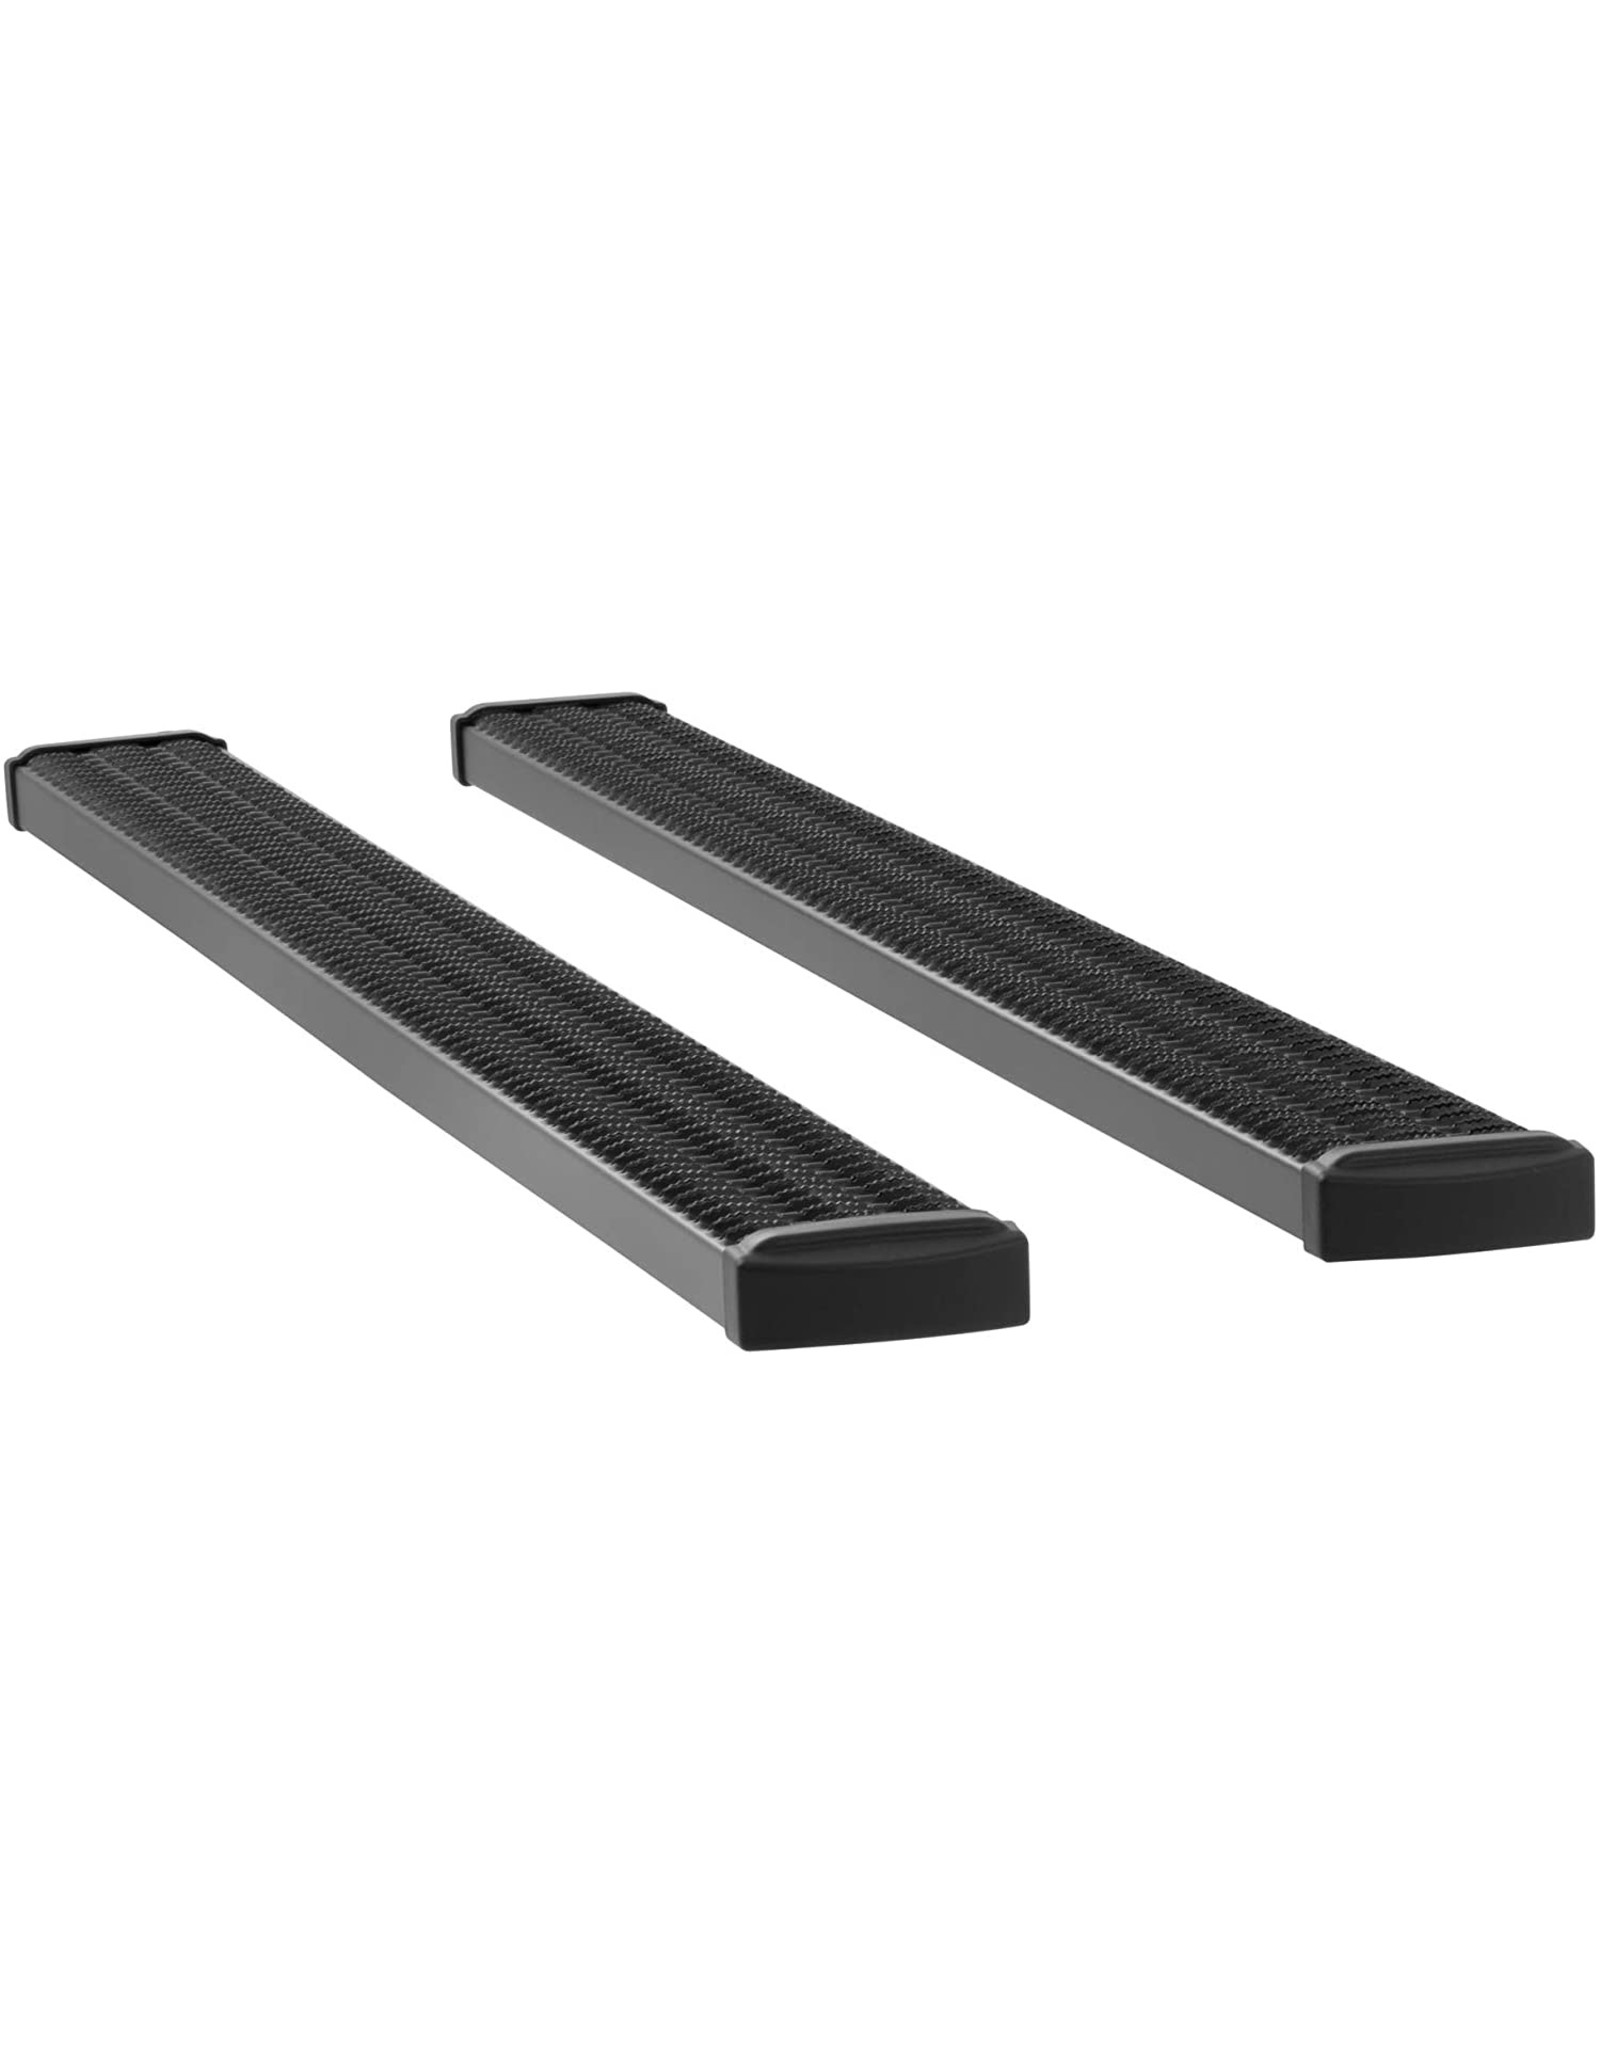 LUVERNE LUVERNE 415088-400829 Grip Step Black Aluminum 88-In Wheel to Wheel Running Boards, Select Ford F-250, F-350 Super Duty